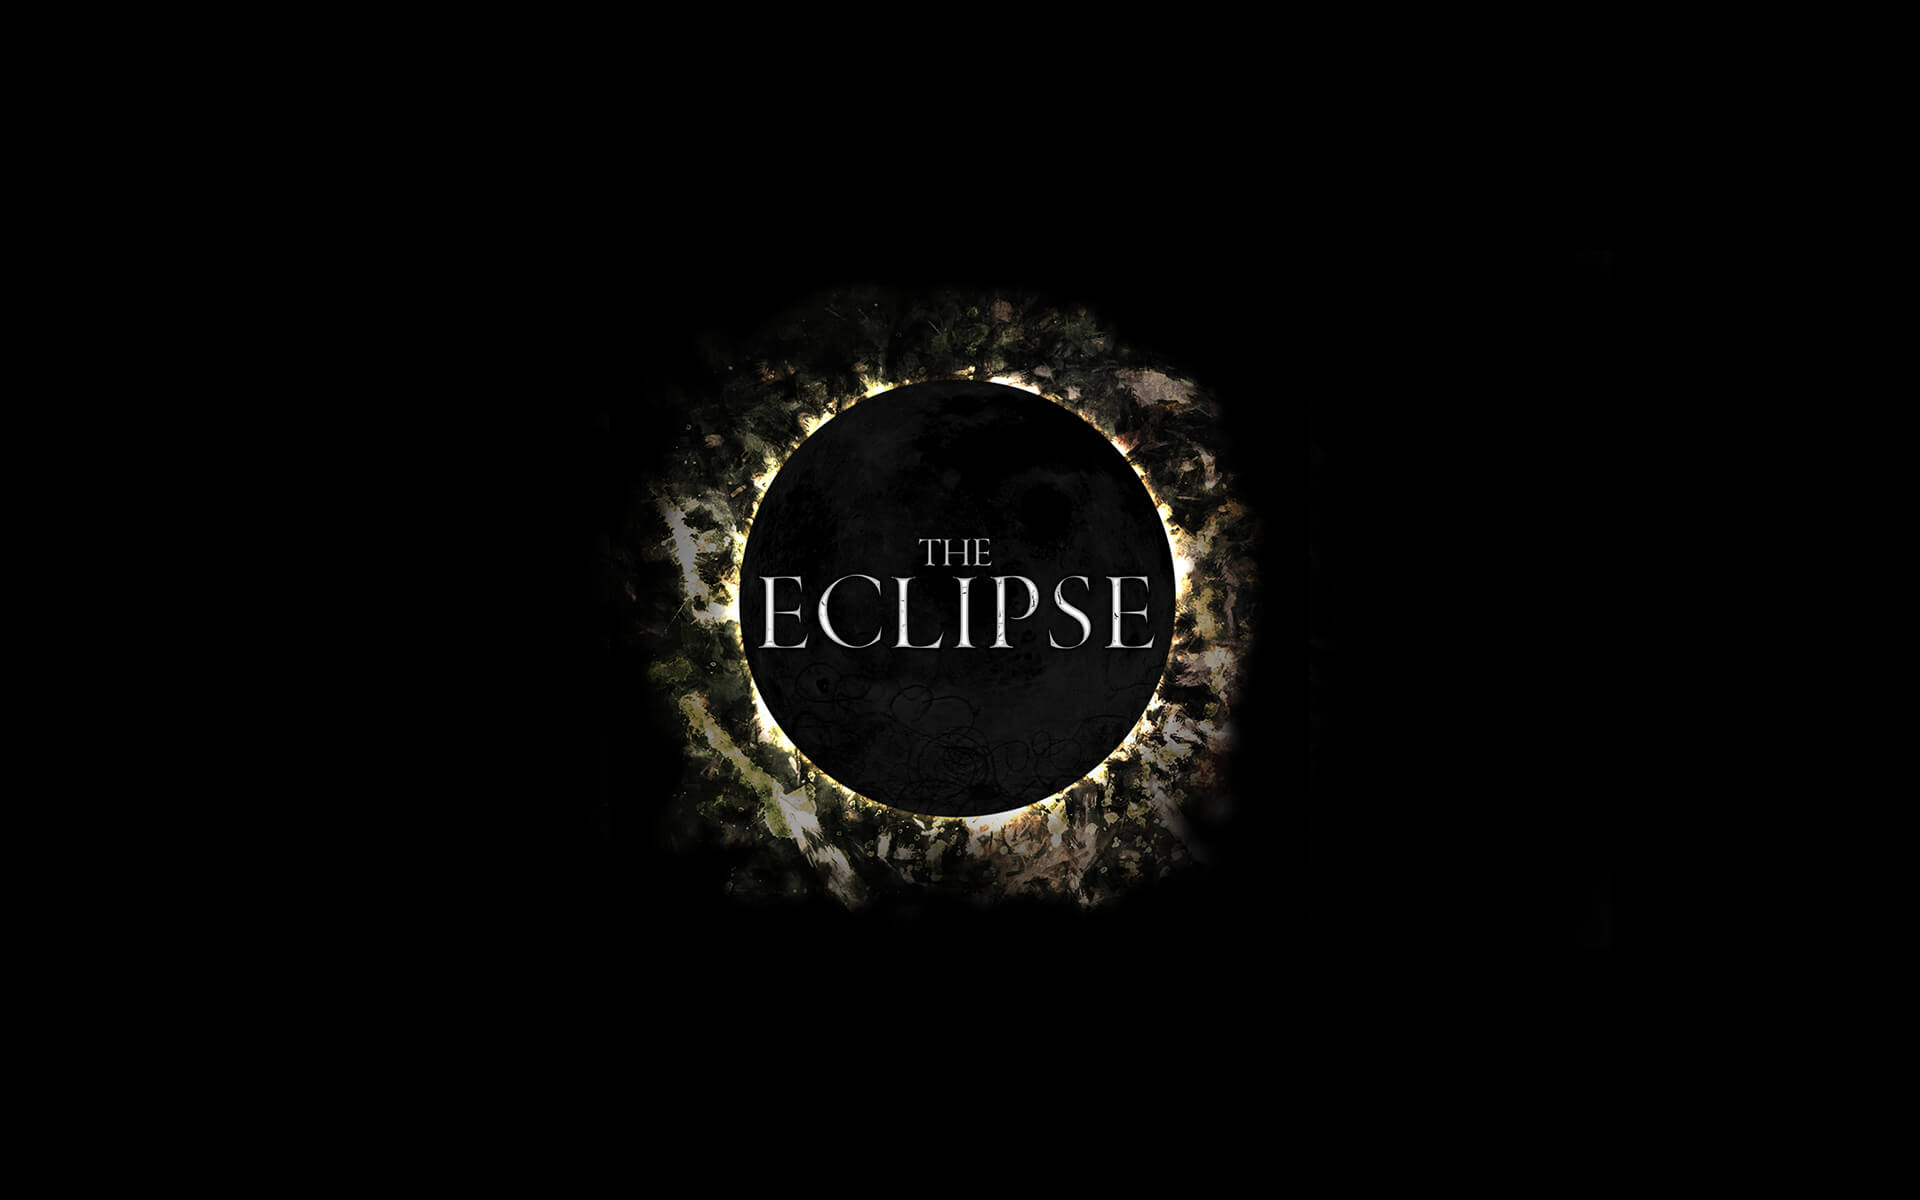 The Eclipse: an AoS28 Competition